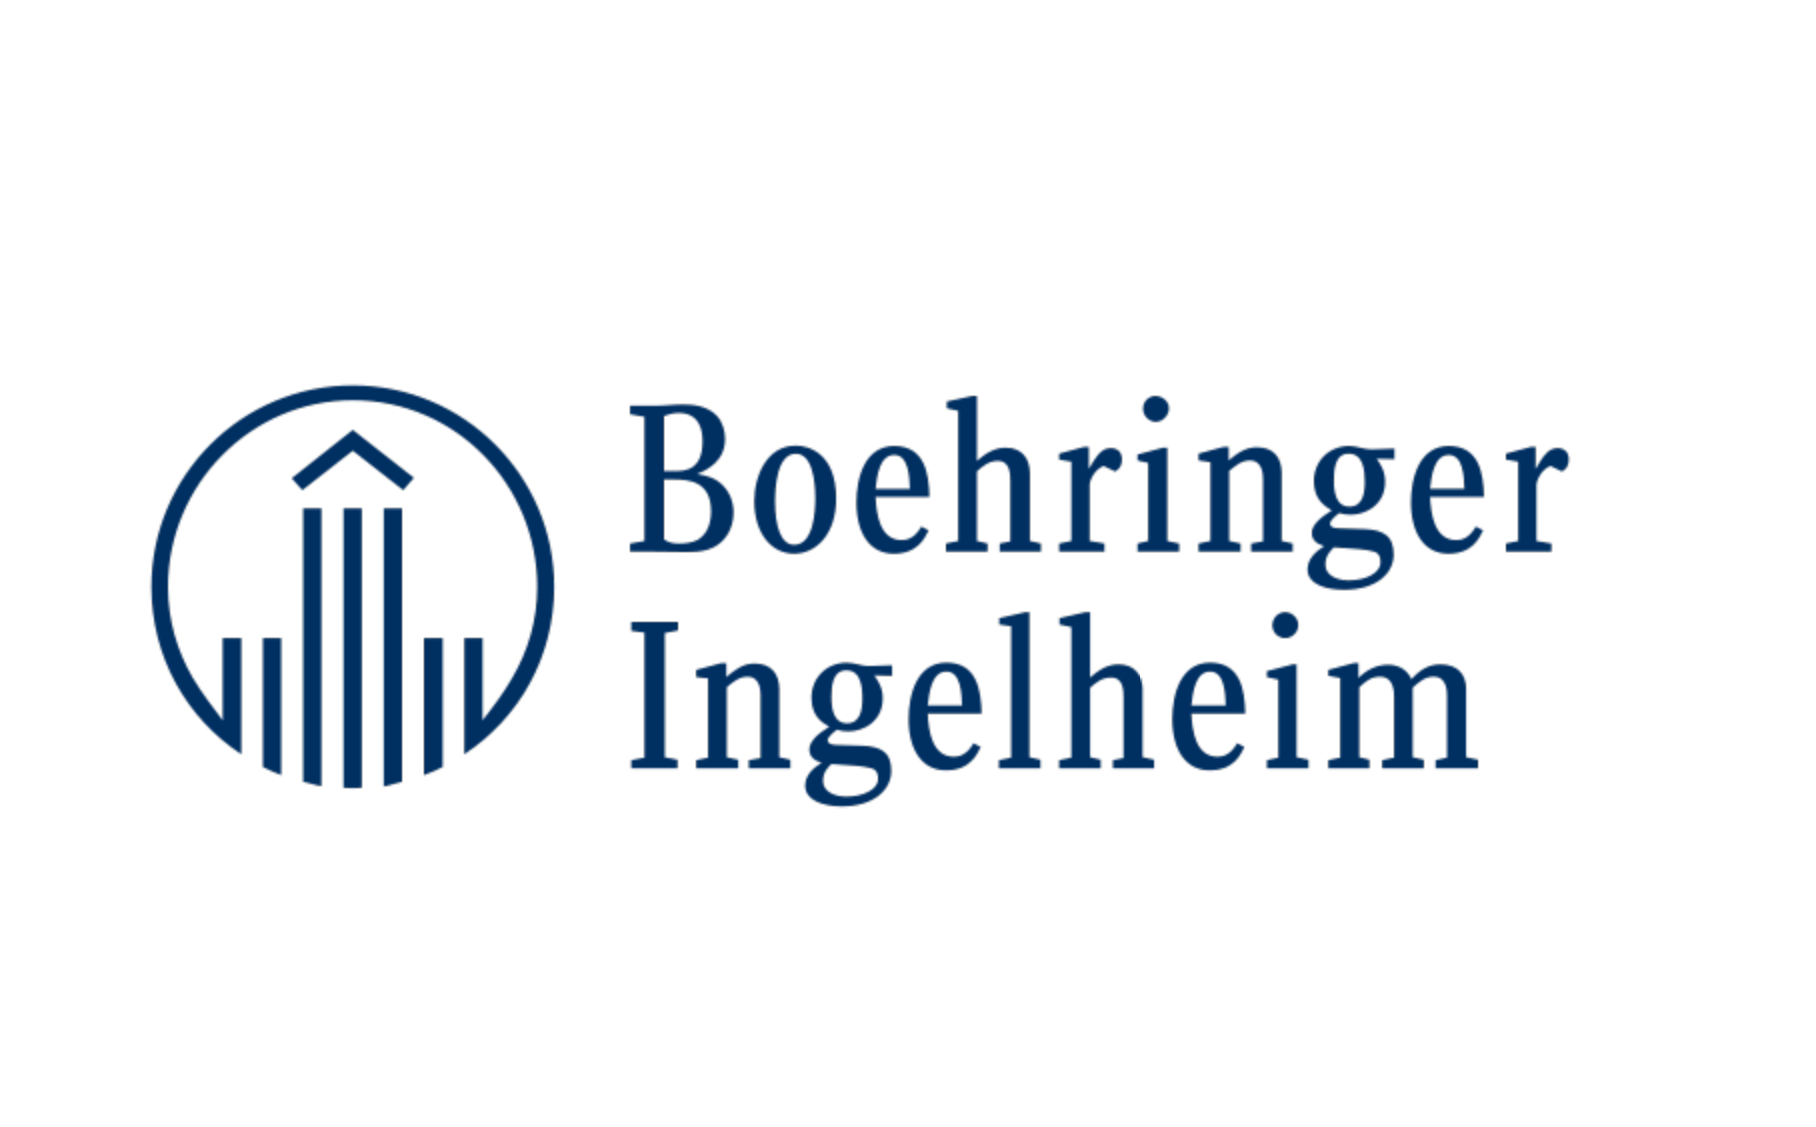 Participants of the Articulate 360 training from the company Boehringer Ingelheim